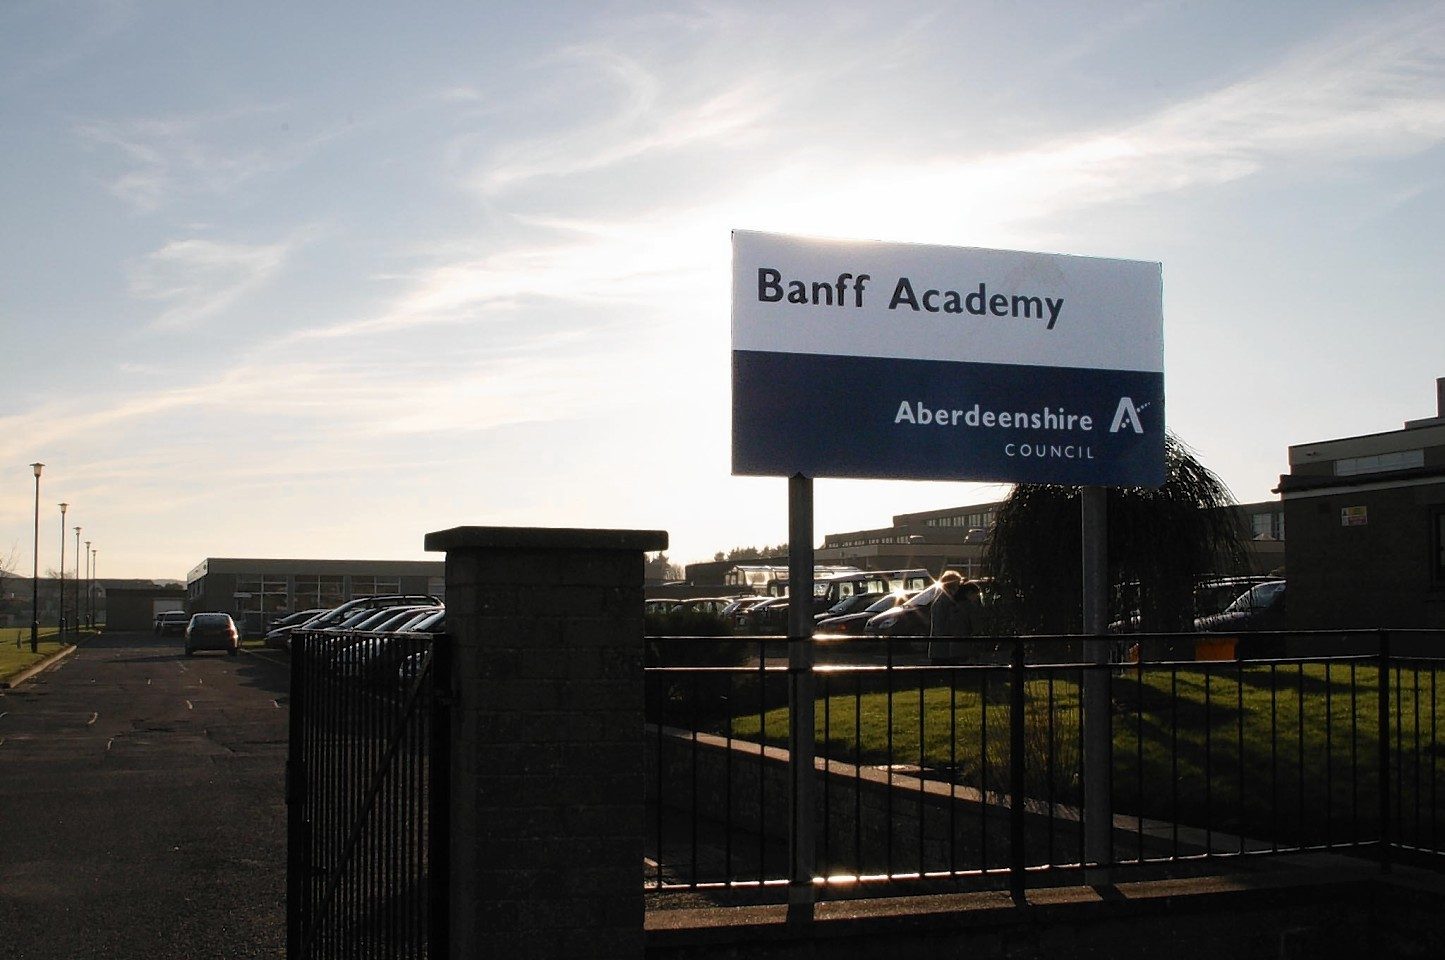 The boy was followed home from Banff Academy